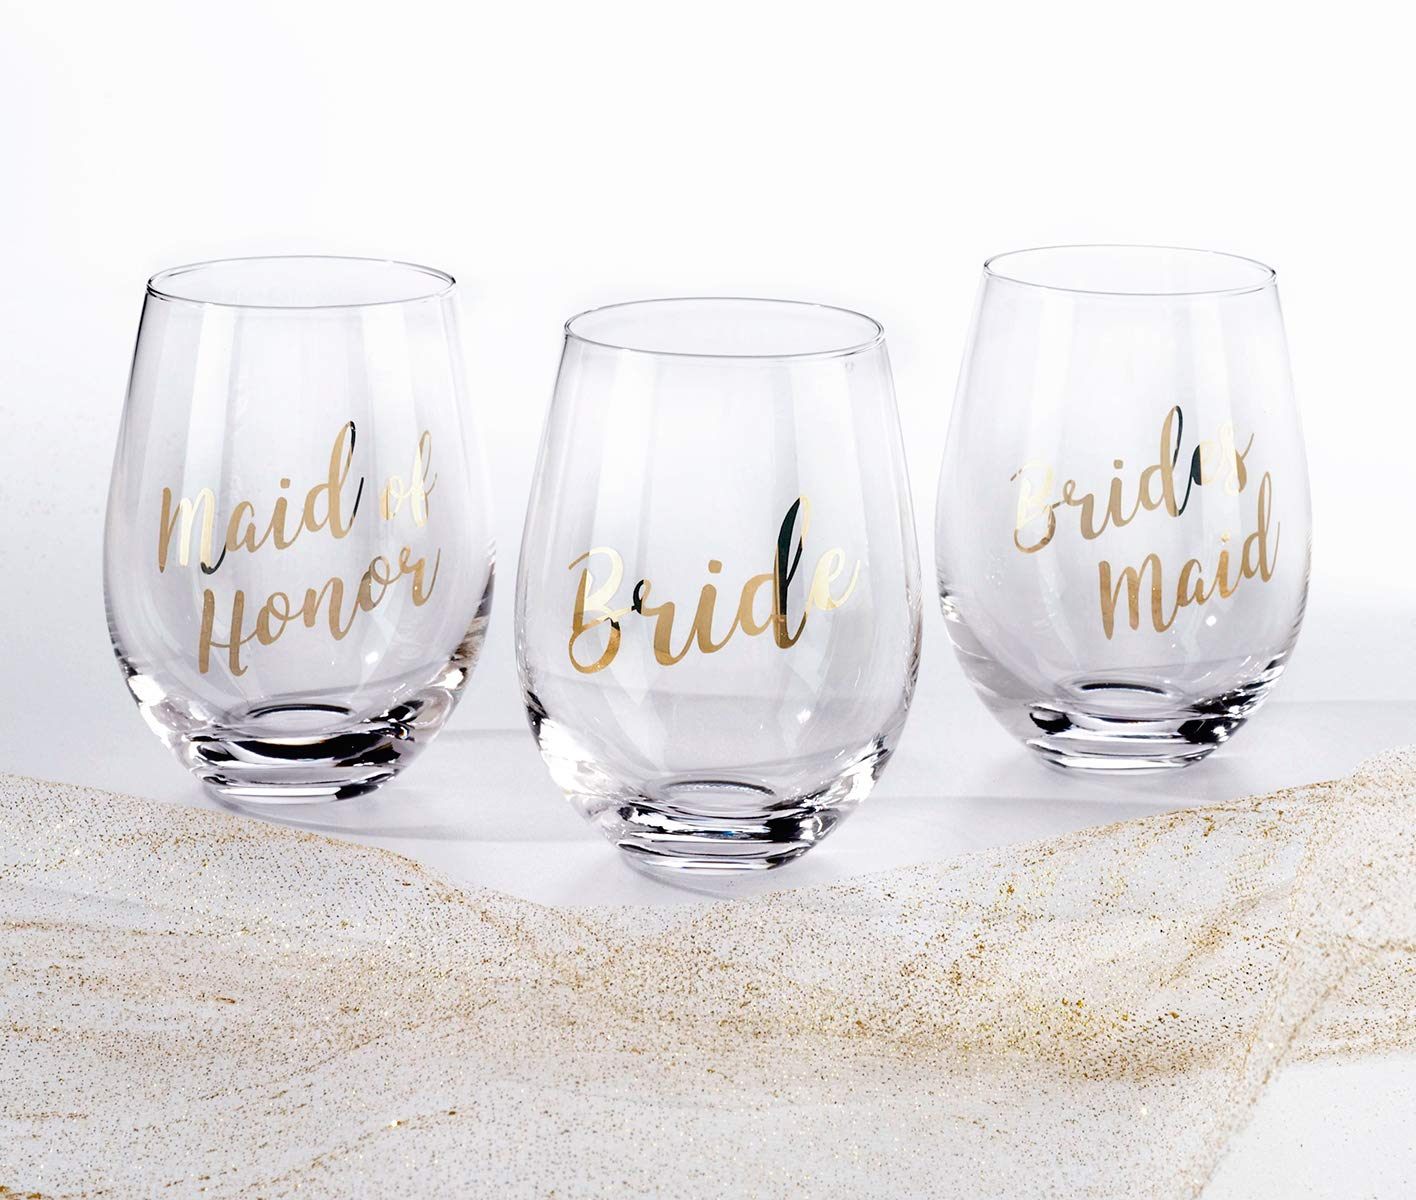 Lillian Rose G115 MH Gold Maid of Honor Stemless Wine Glass, Height 4.75 inches by Lillian Rose (Image #2)